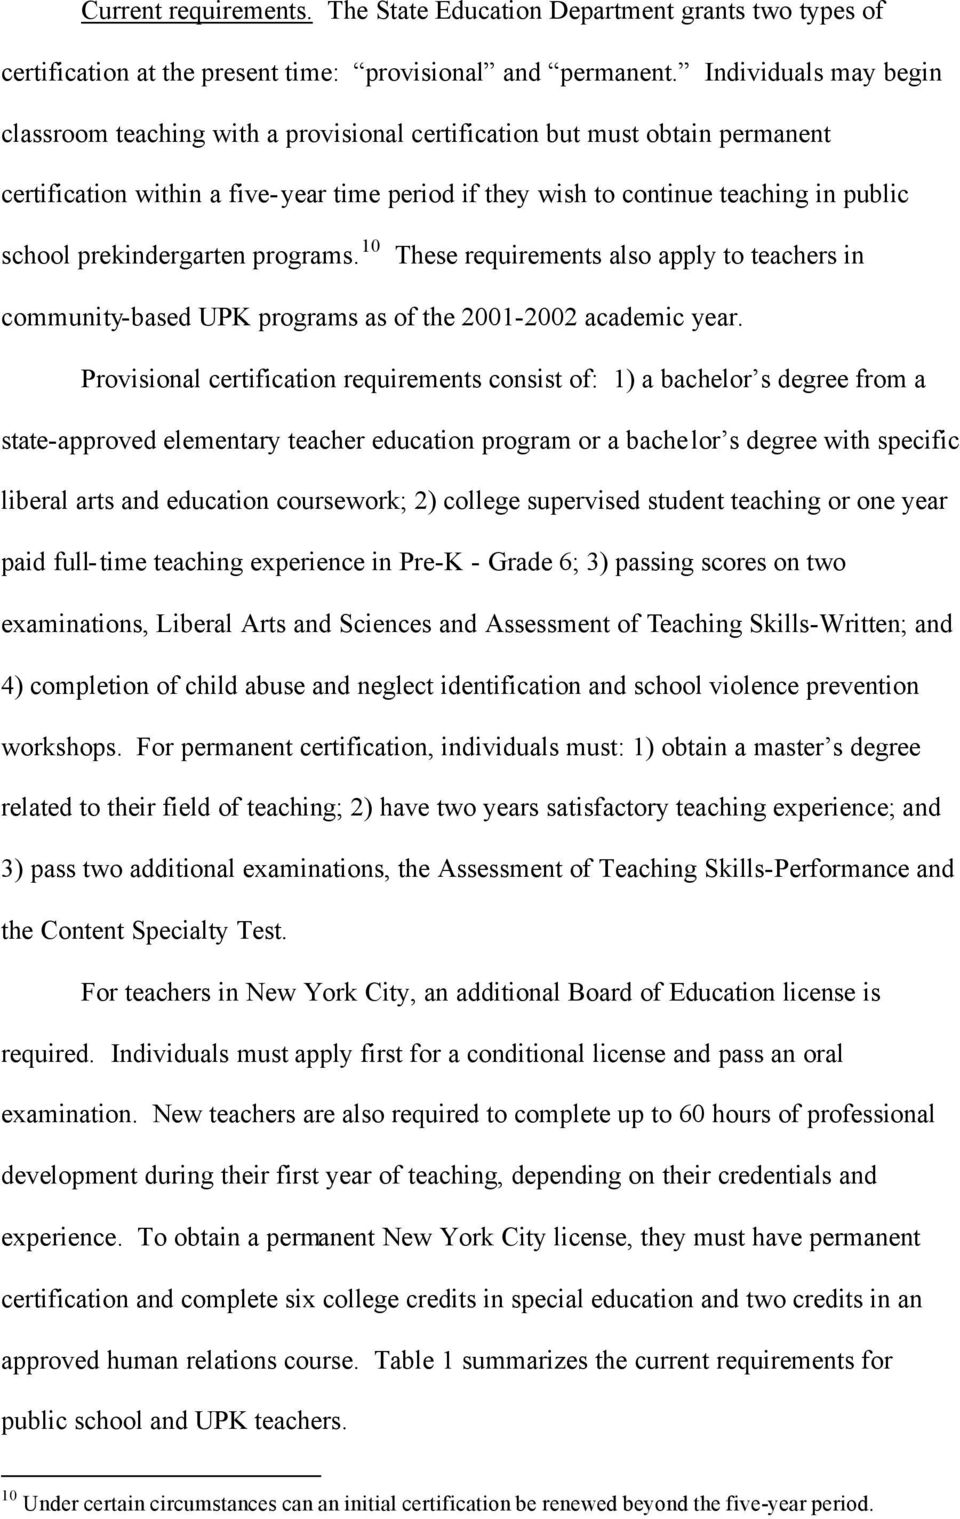 prekindergarten programs. 10 These requirements also apply to teachers in community-based UPK programs as of the 2001-2002 academic year.